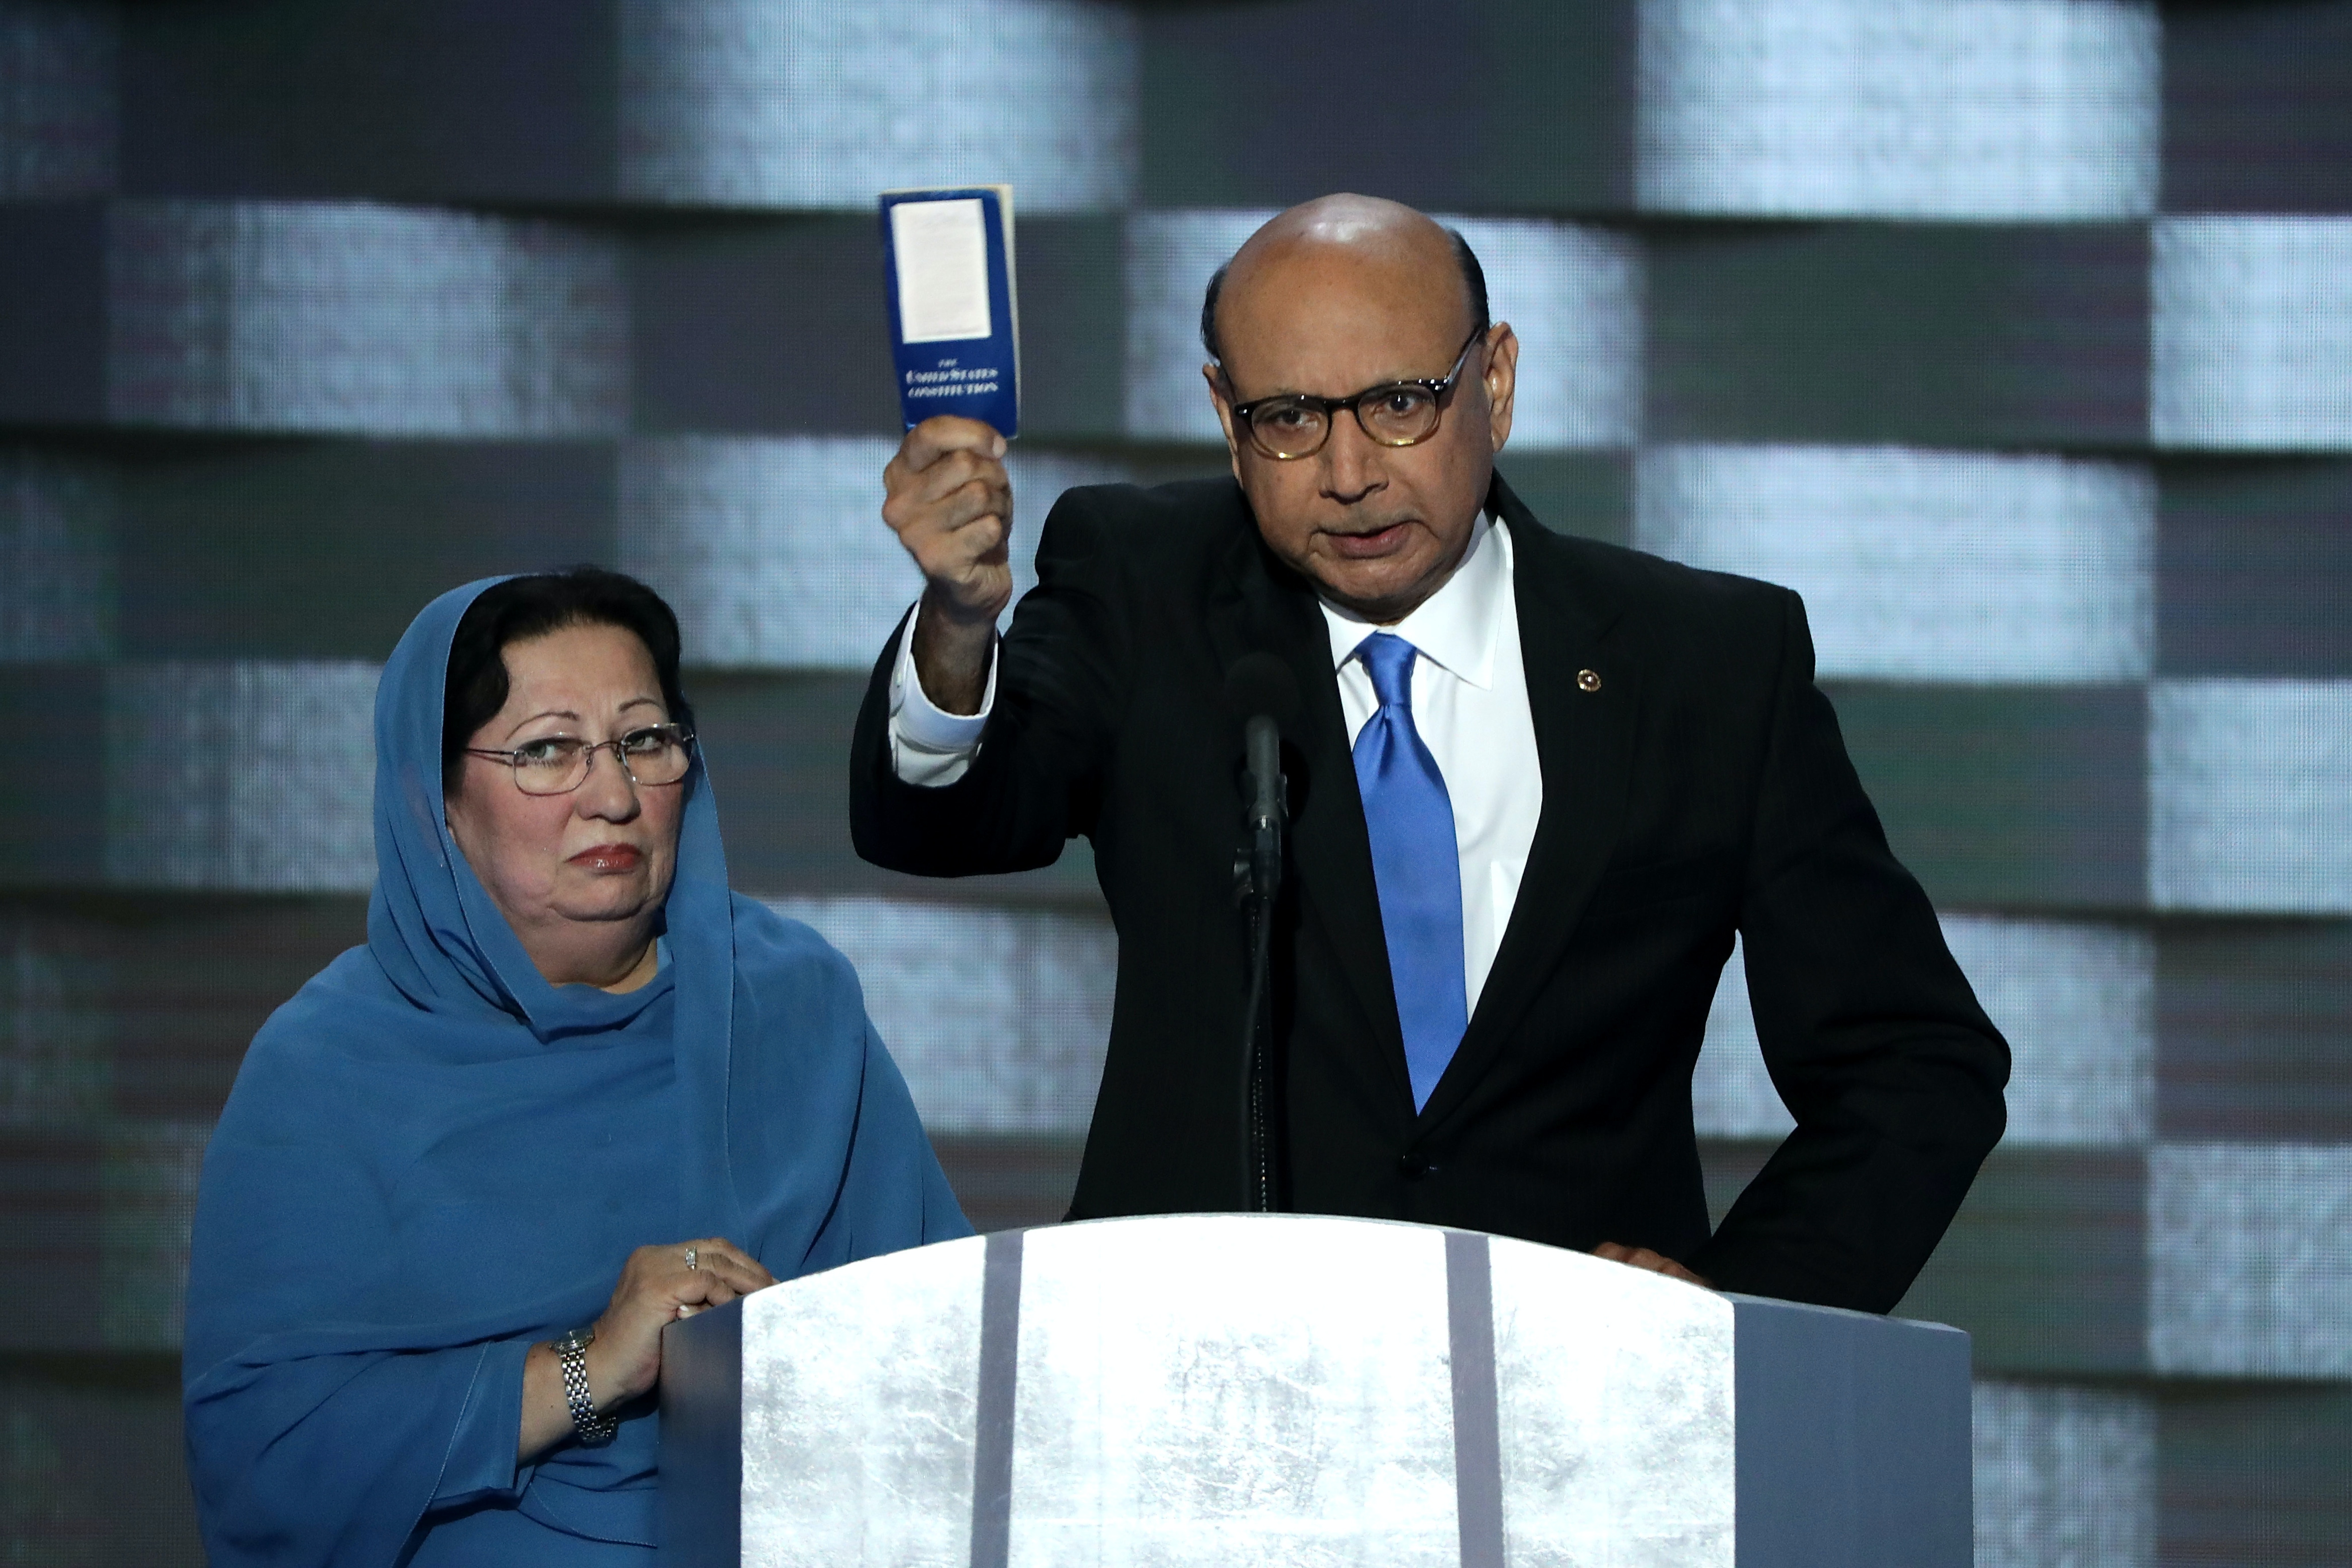 Khizr Khan, father of deceased Muslim U.S. Soldier Humayun S. M. Khan, holds up a booklet of the U.S. Constitution at the Democratic National Convention on July 28.